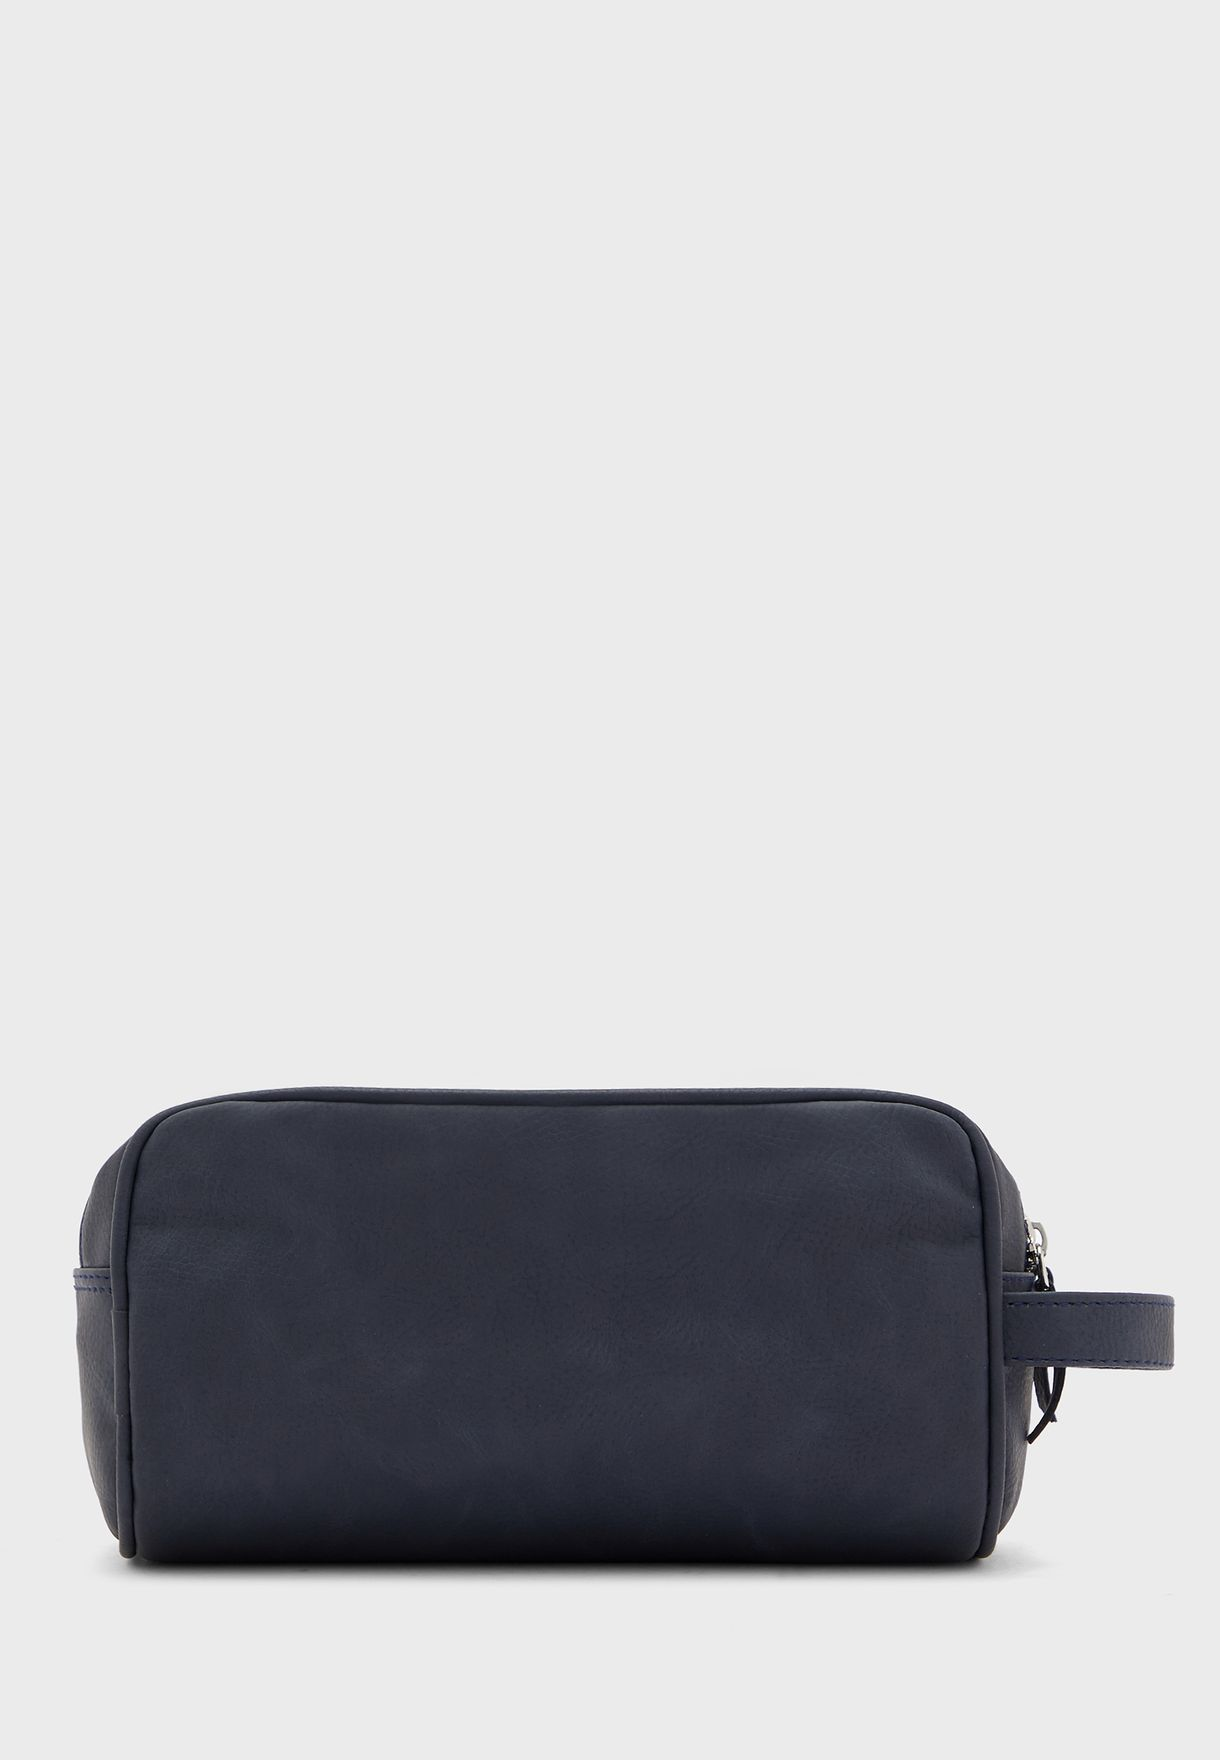 Carry On Travel PU bag